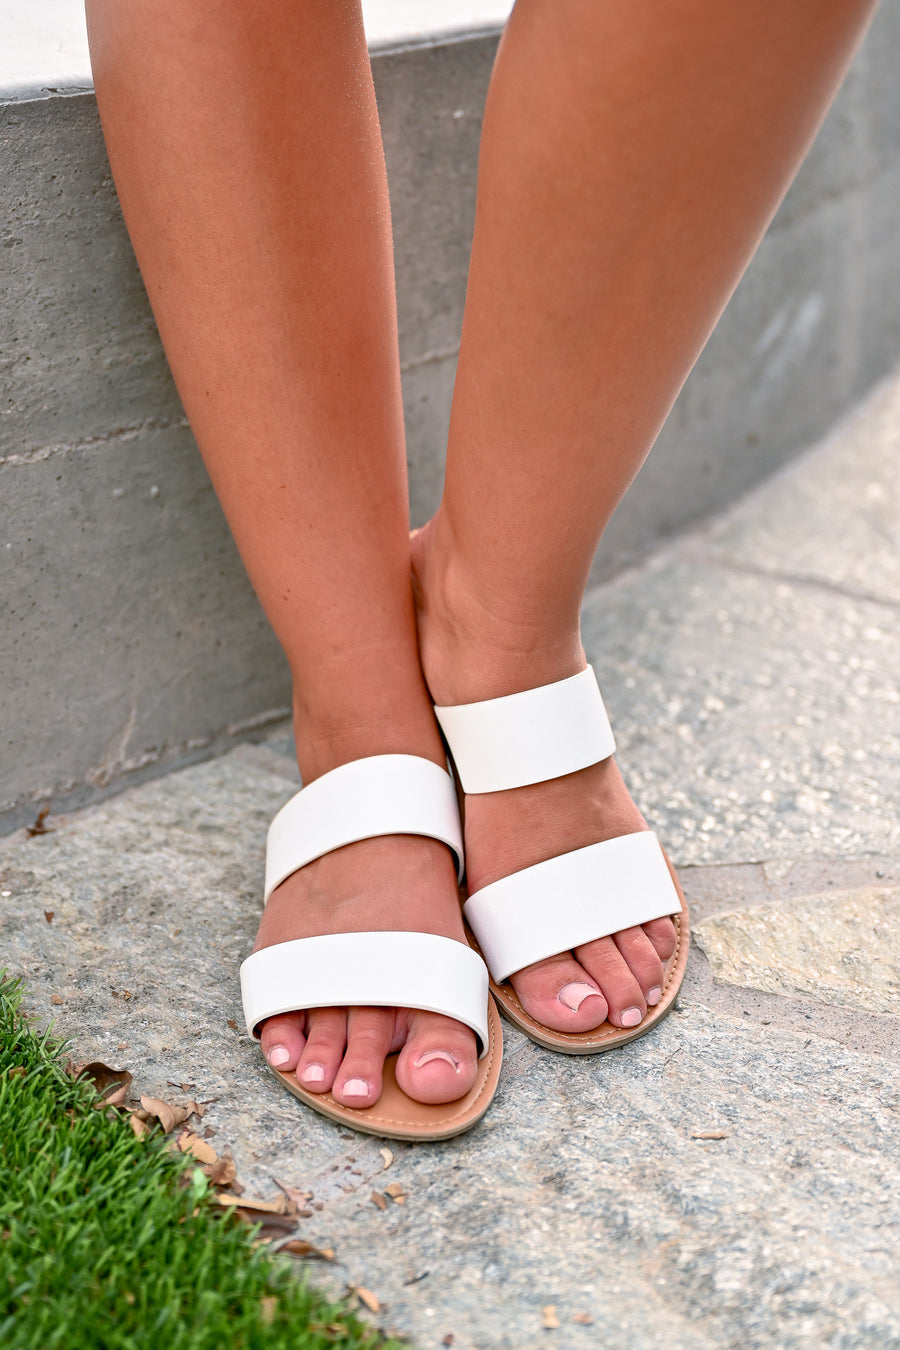 Athena Slide Sandals - White - Women's dual banded slide sandals - Closet Candy Boutique